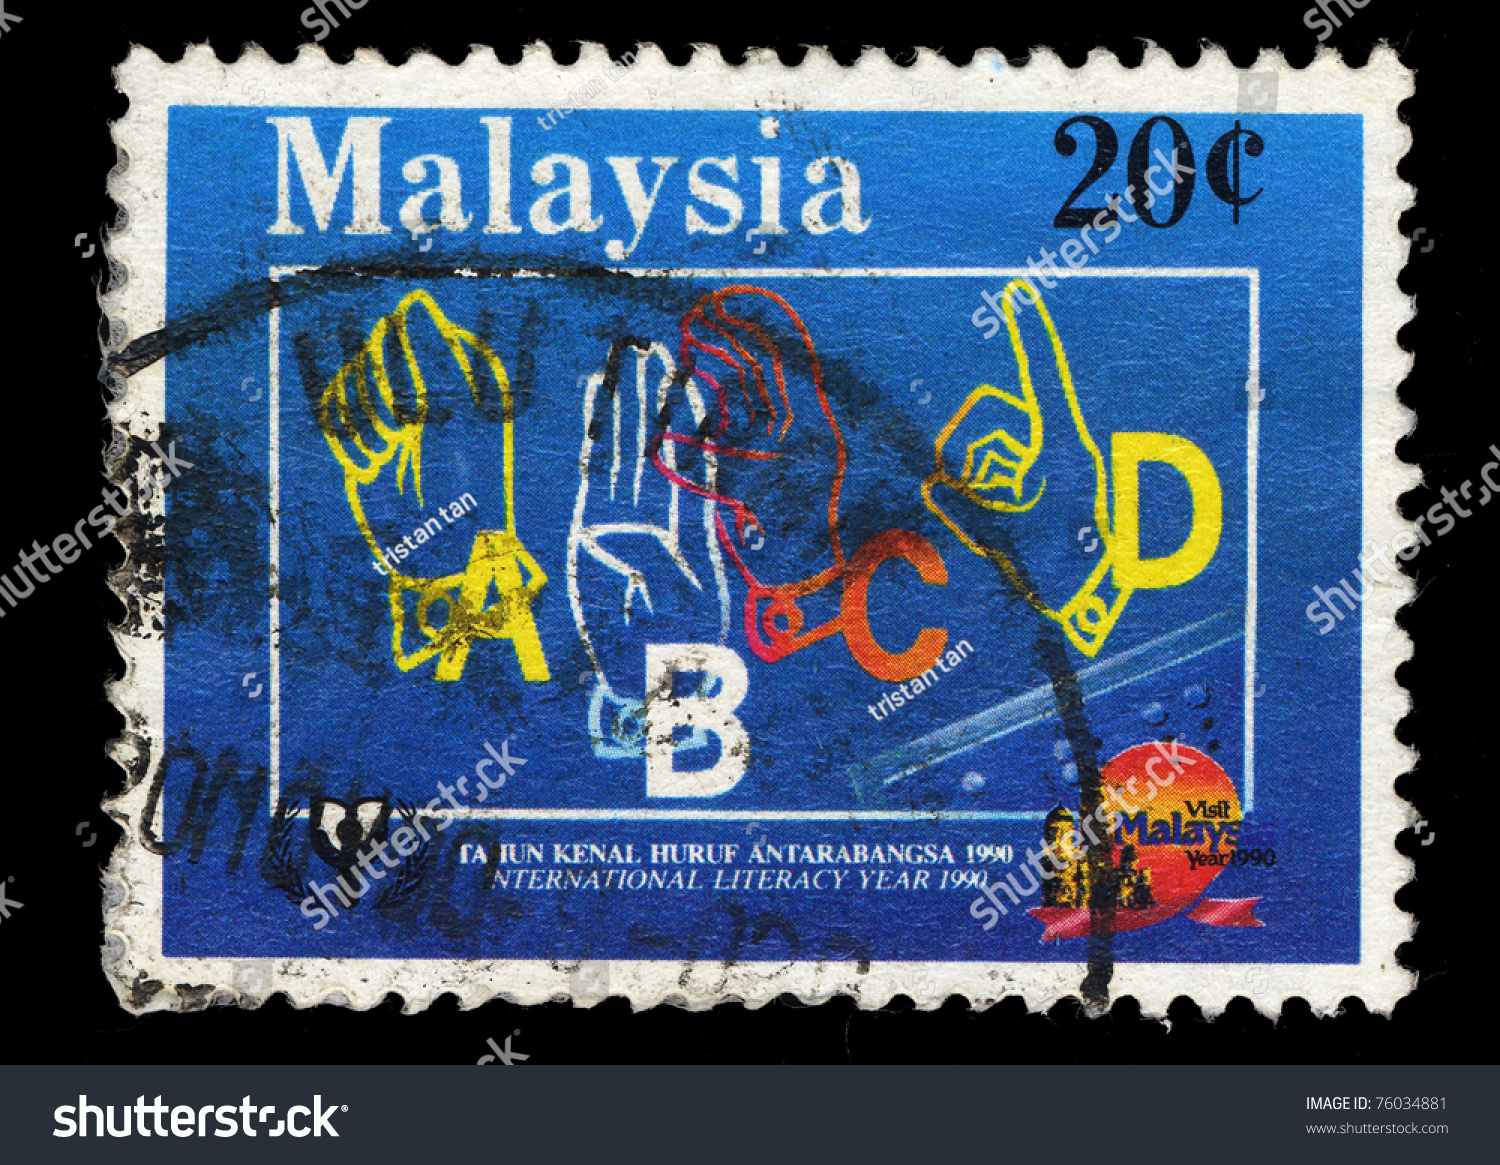 malaysia in the 1990s An economic history of malaysia, c1800-1990: the transition to modern economic growth basingstoke: macmillan and new york: st martin's press, 2000.